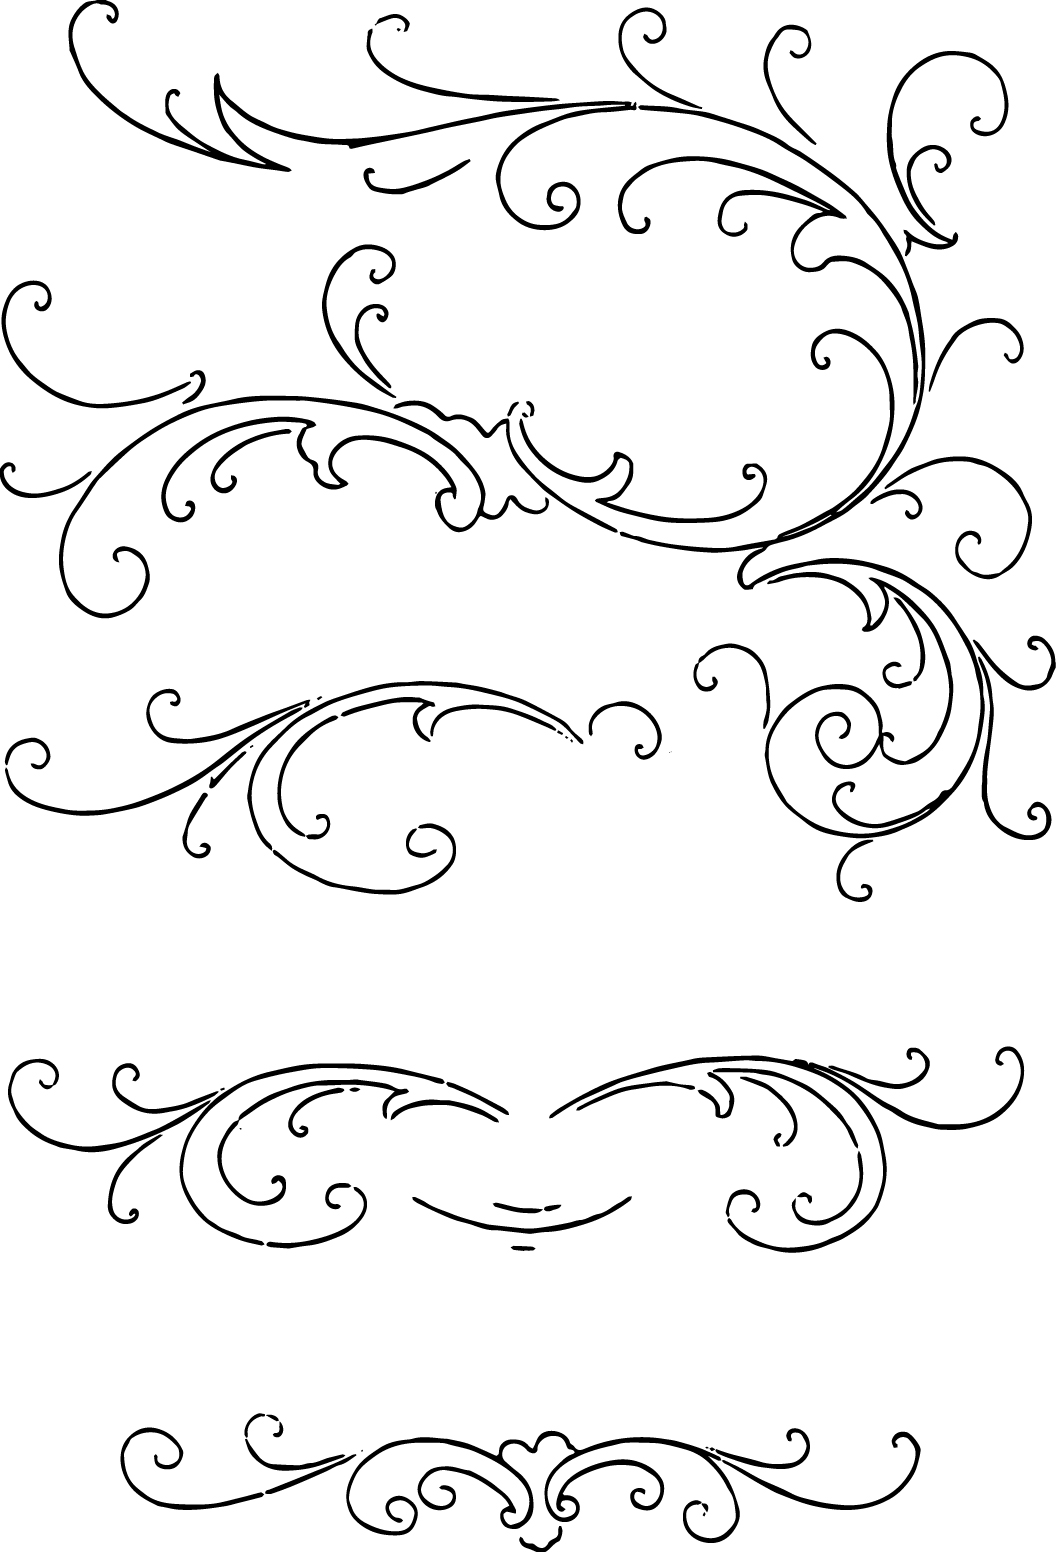 Free clipart images for download graphic freeuse download Ornament Vector Png   Free Download Clip Art   Free Clip Art   on ... graphic freeuse download